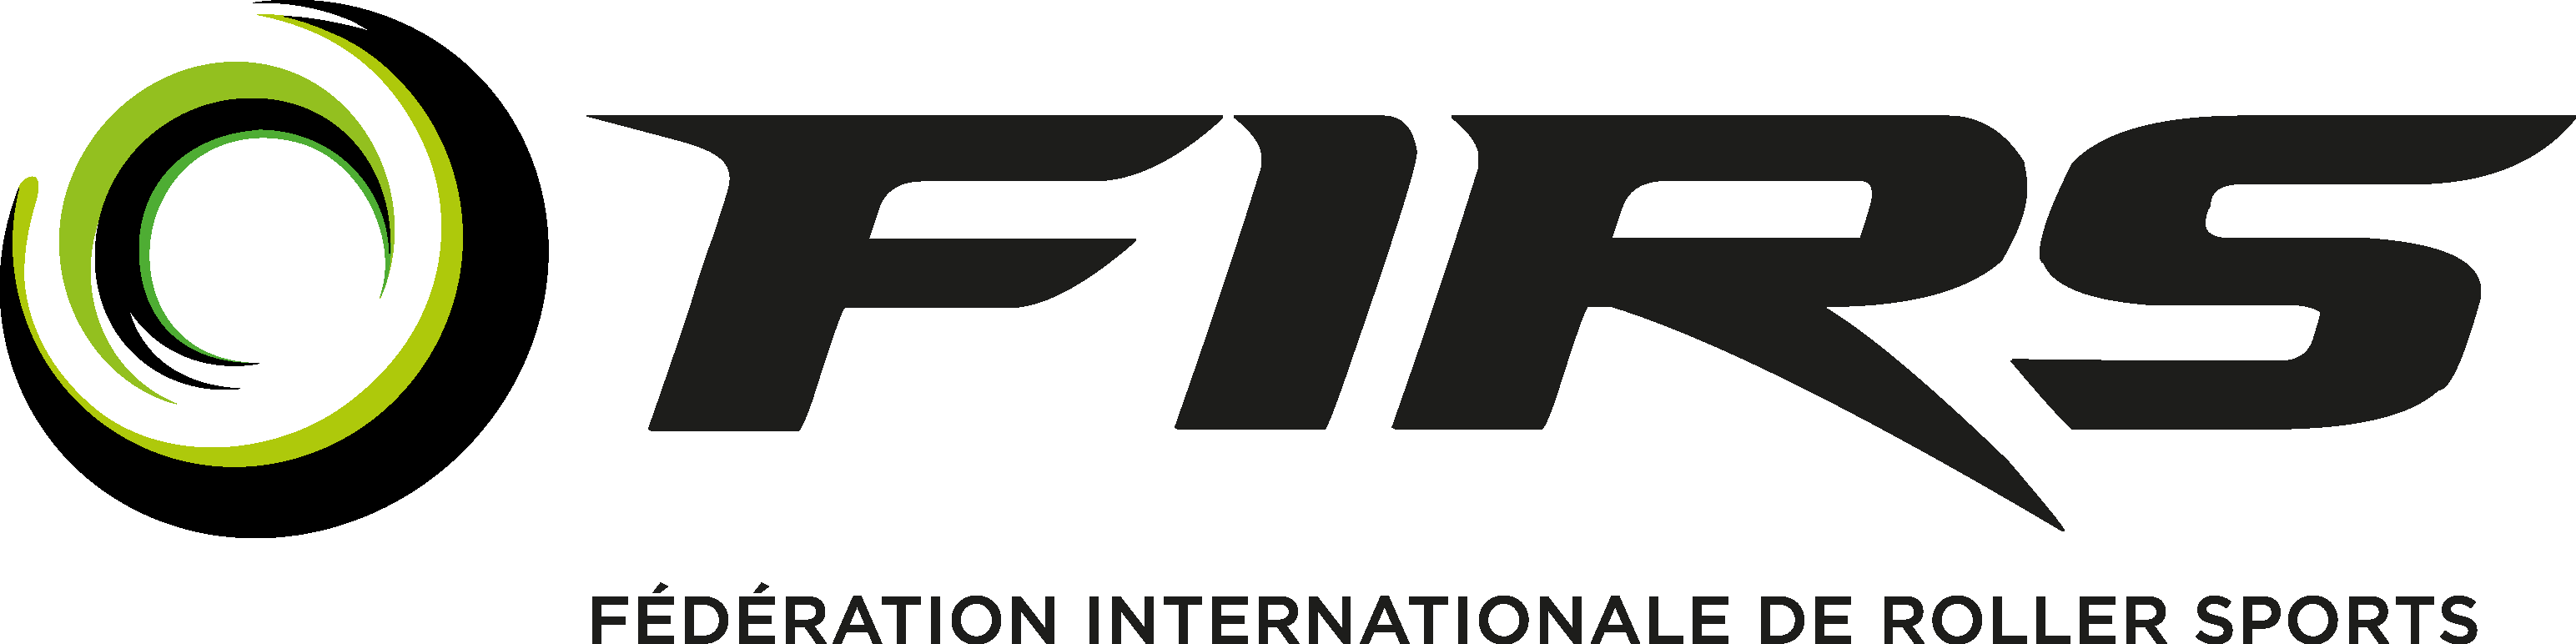 International Roller Sports Federation (FIRS) Logo [rollersports.org]